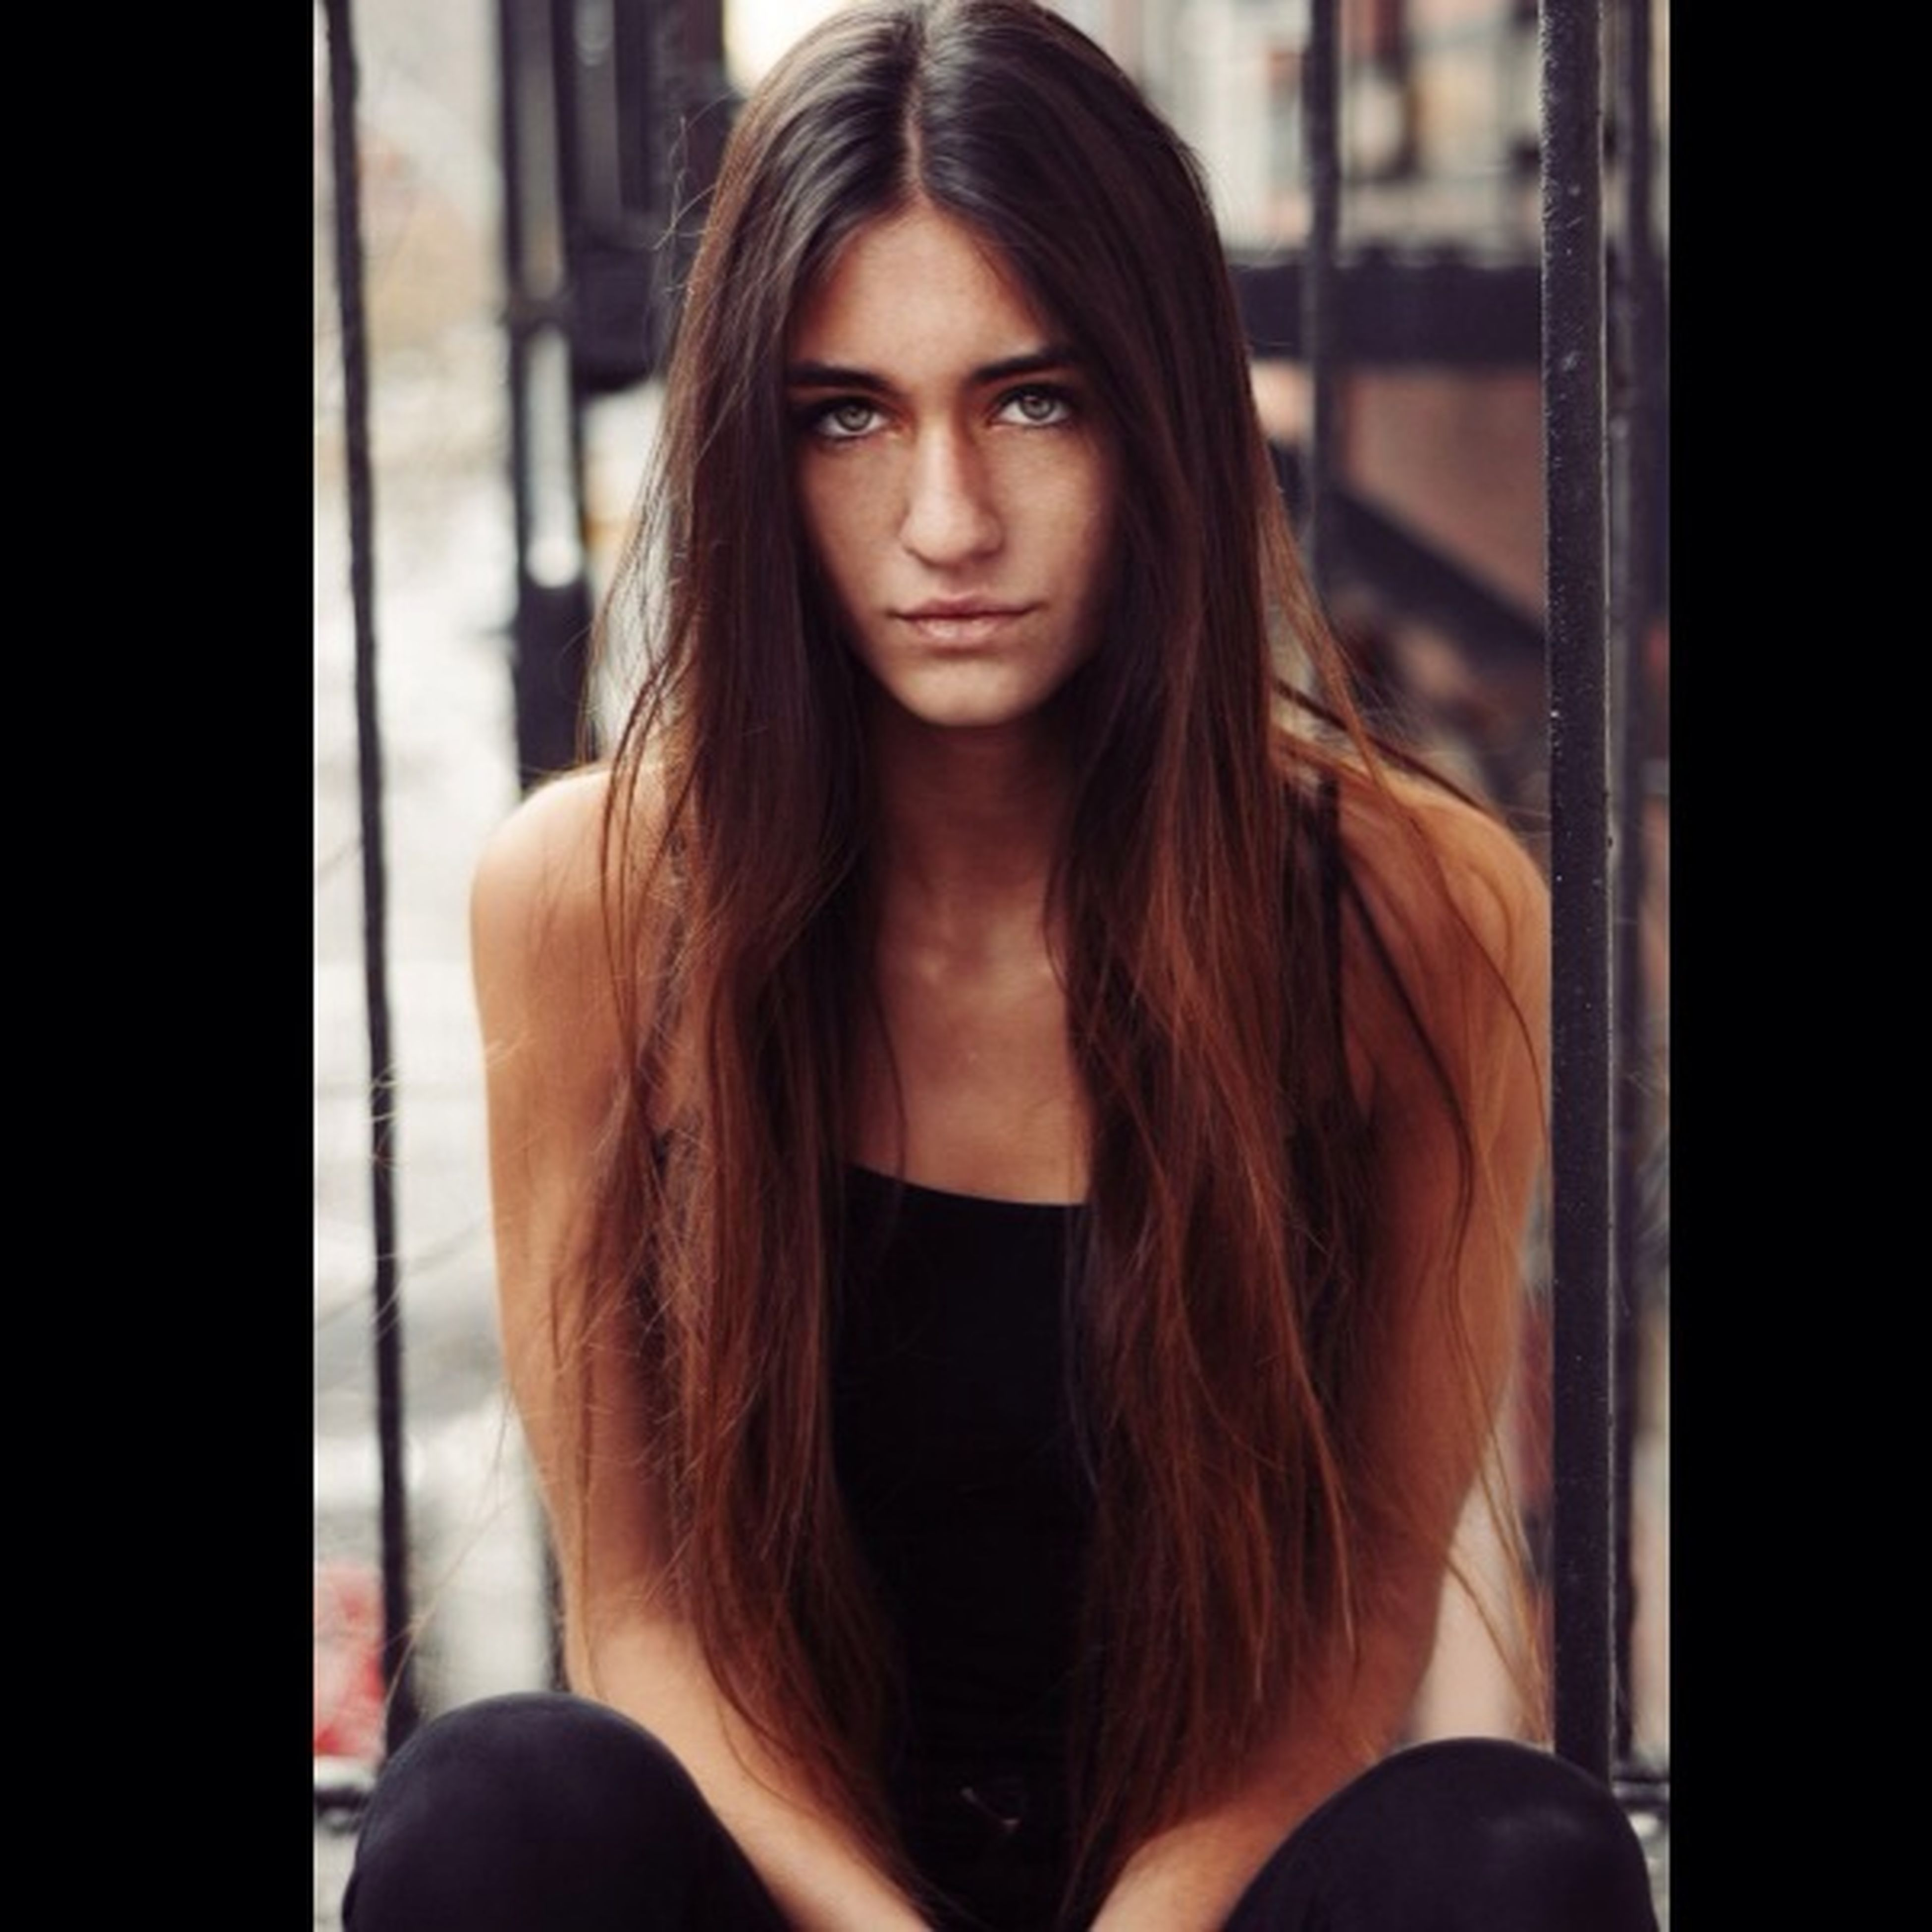 young adult, young women, long hair, lifestyles, person, portrait, looking at camera, front view, leisure activity, casual clothing, brown hair, standing, medium-length hair, headshot, smiling, waist up, indoors